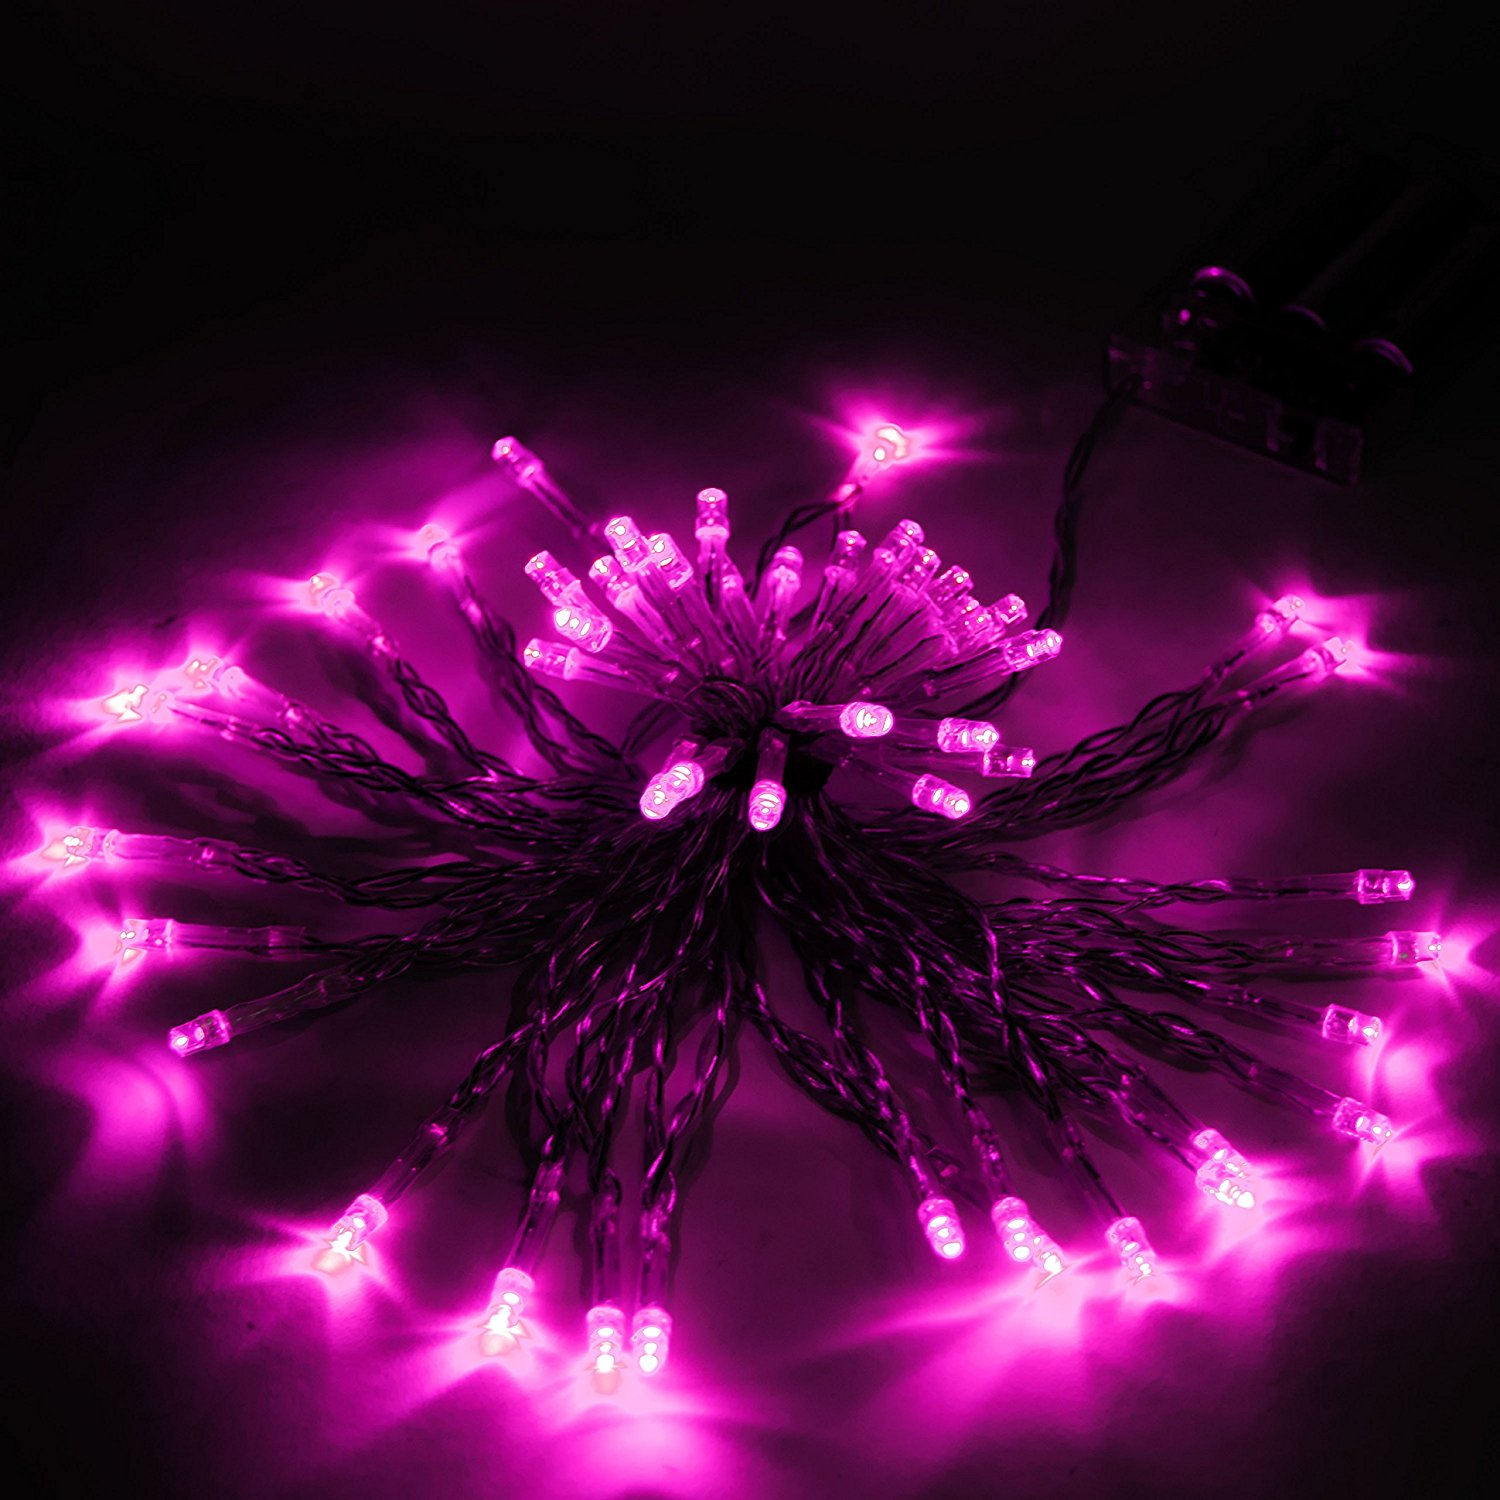 40 LED 13 Feet Battery Christmas Lights Pink Color, Lot of 5